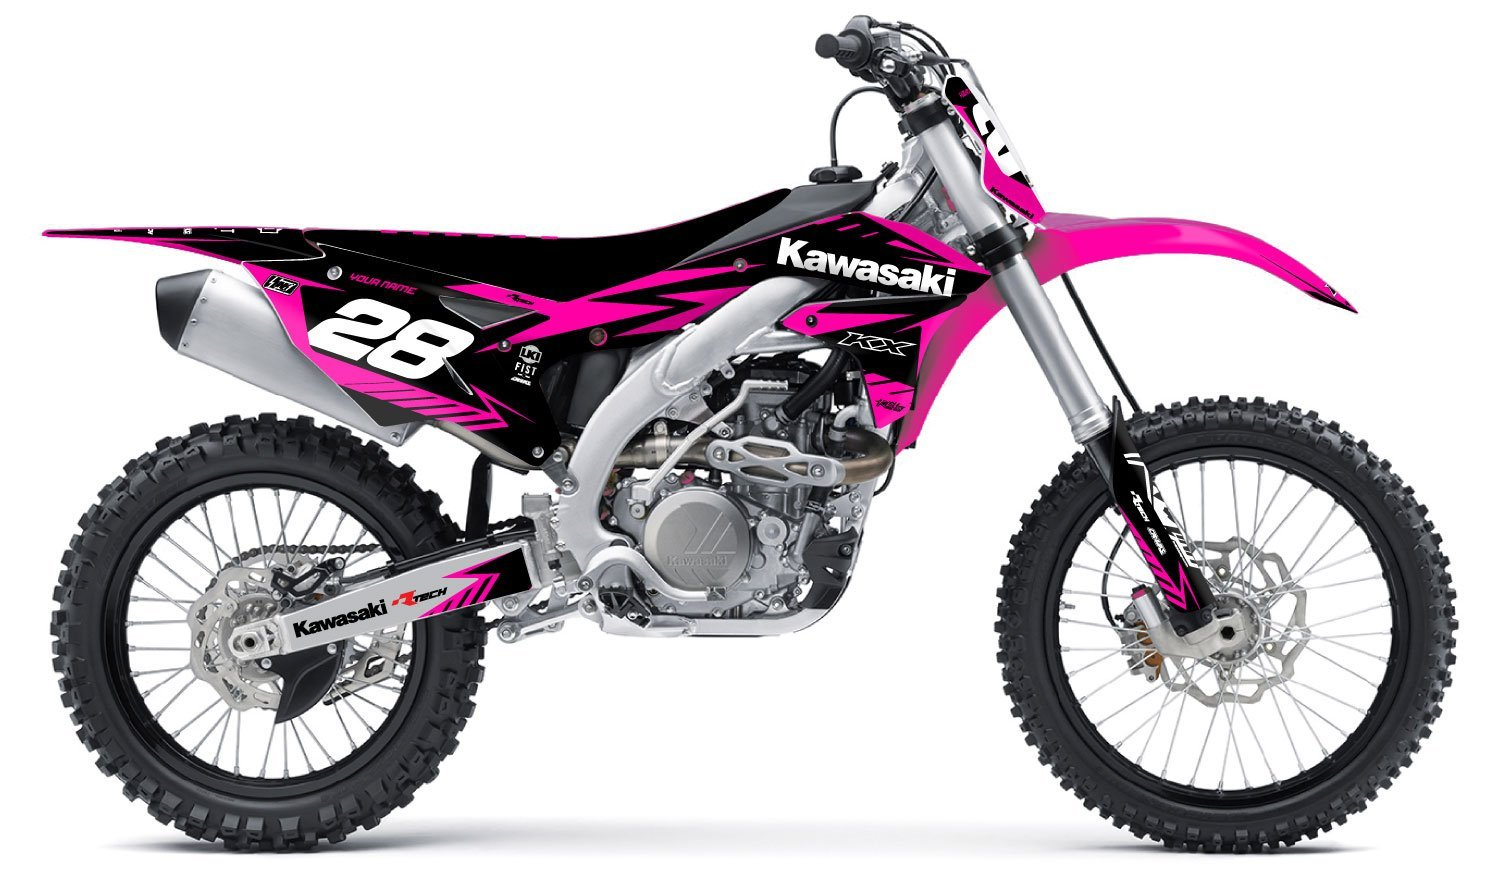 kawasaki neon pink kit   rival ink design co custom